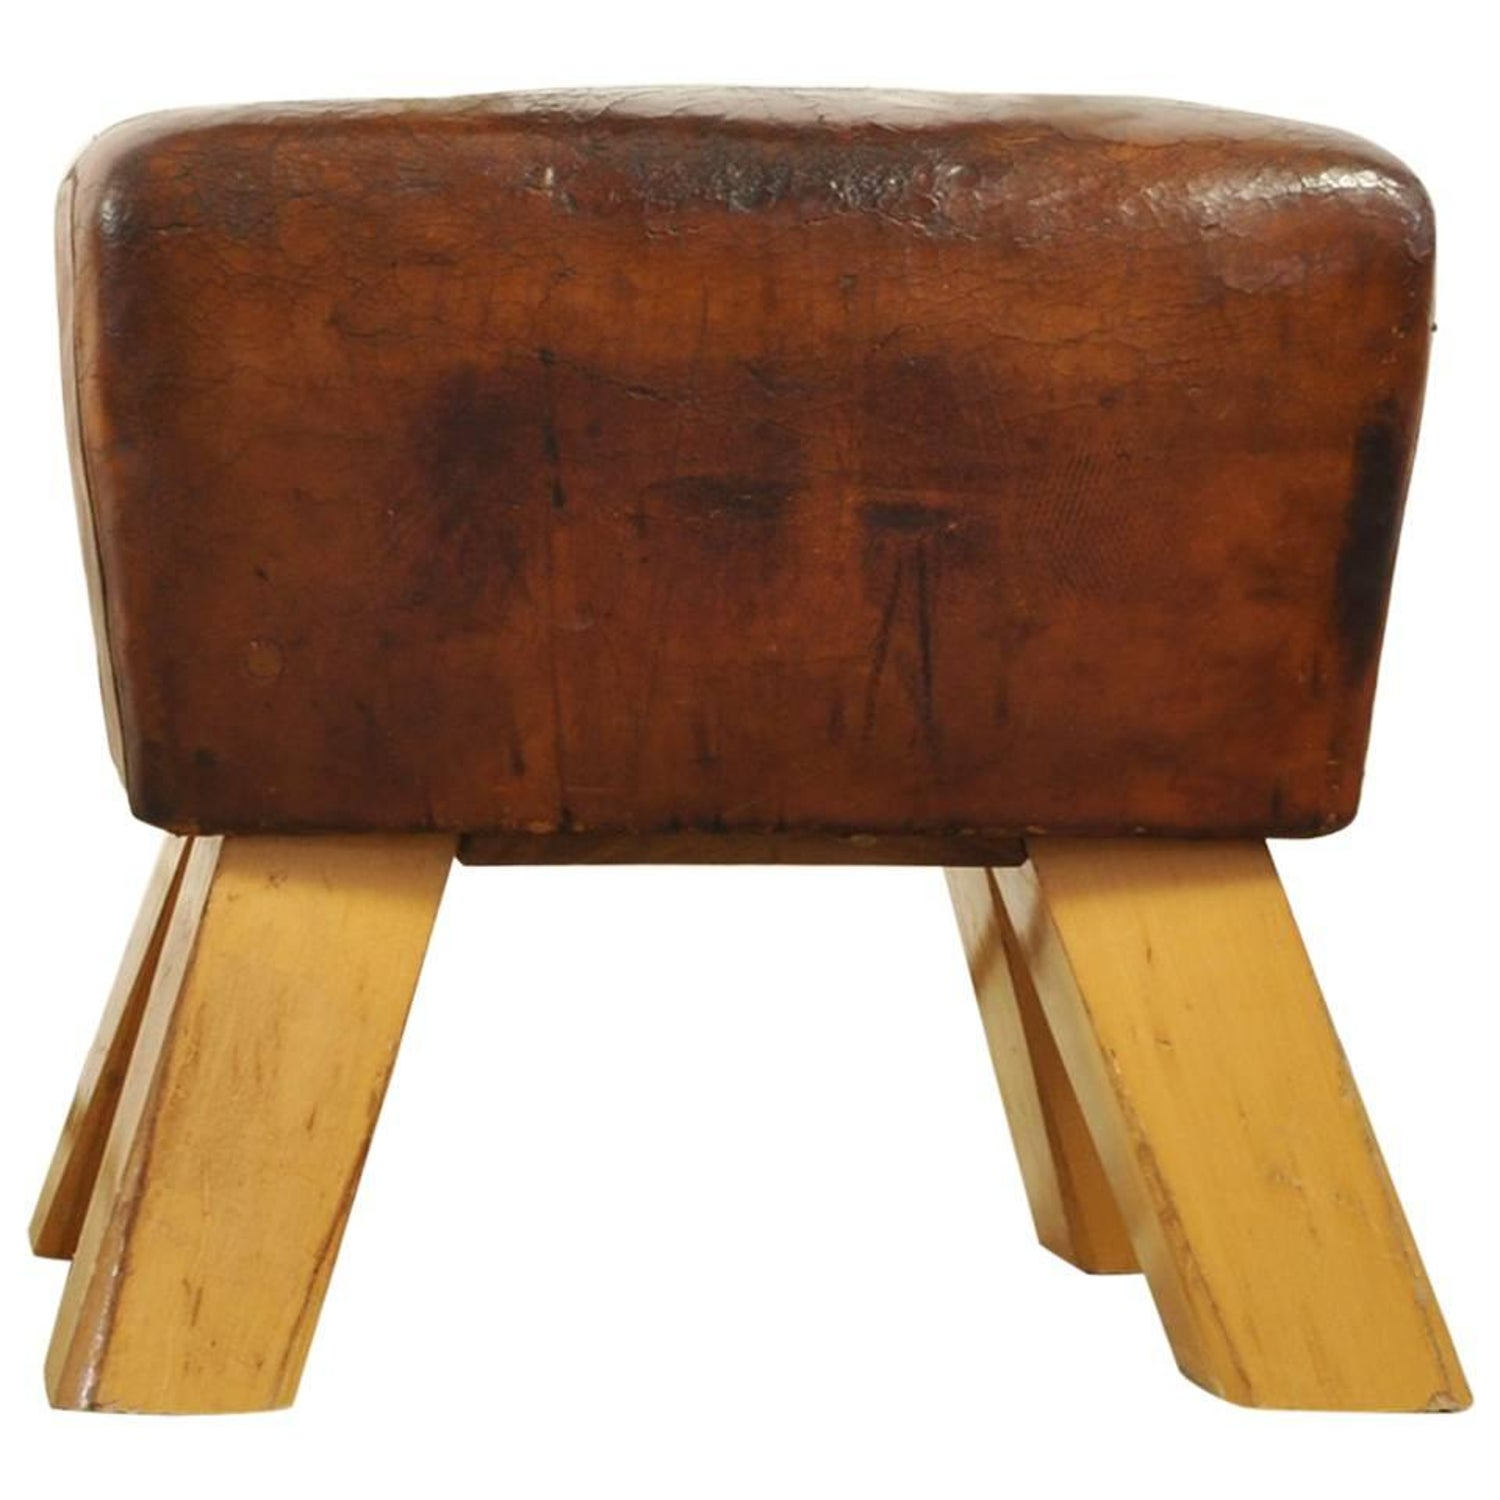 Jens risom floating bench for sale at 1stdibs - Small Vintage Reclaimed Leather Pommel Horse Bench